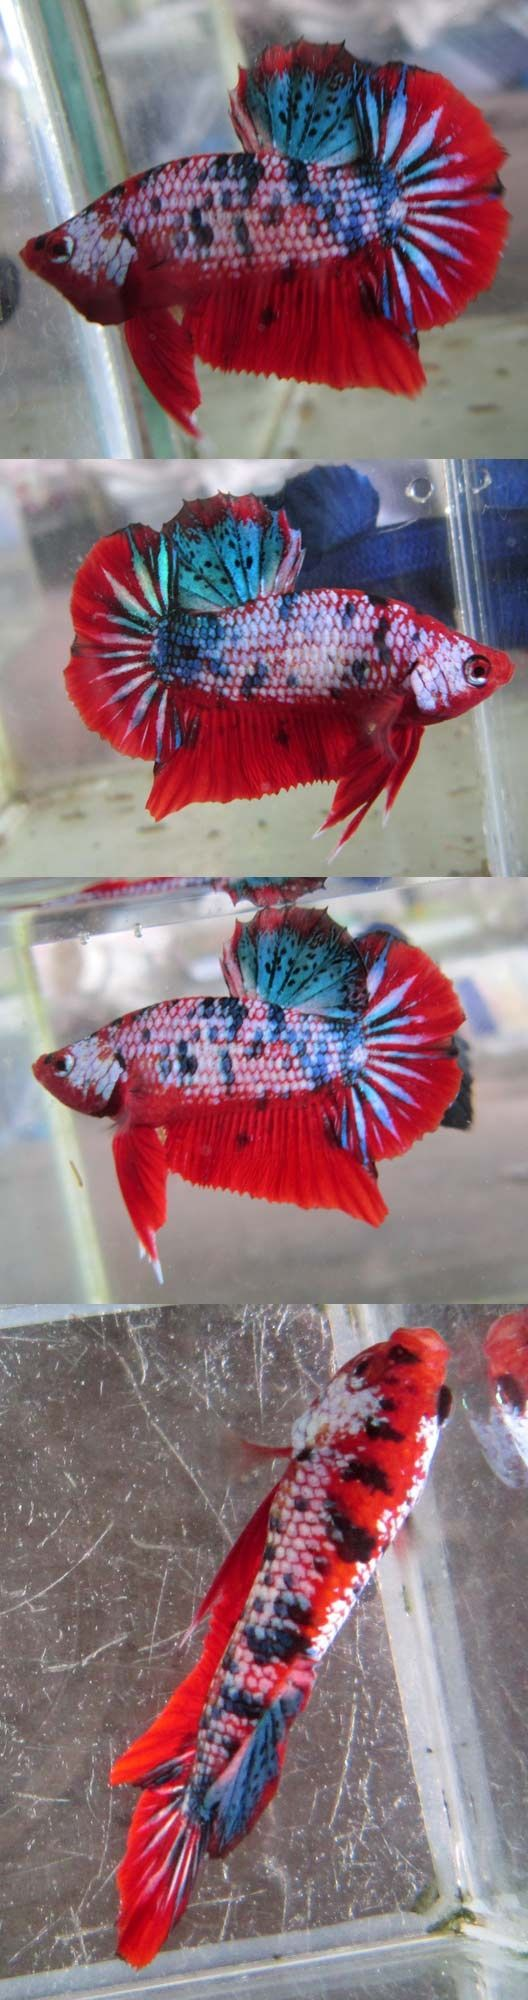 The 51 best Fish images on Pinterest | Tropical fish, Exotic fish ...